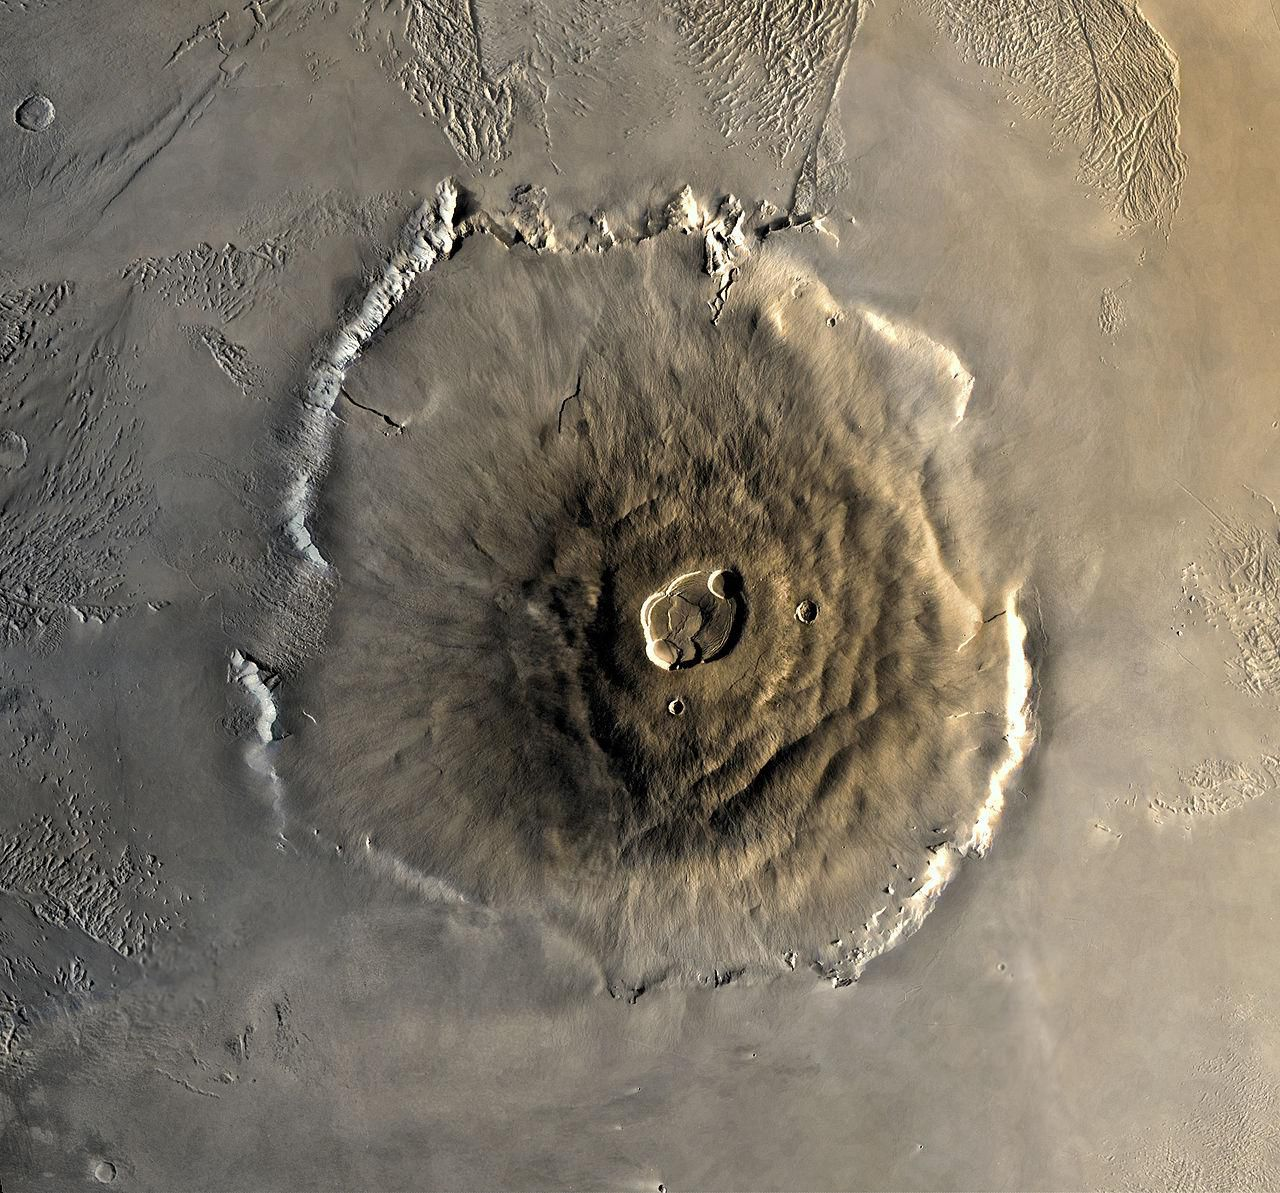 Billions of years ago, a giant landslide cascaded down the slopes of the largest mountain in the solar system—Mars' Olympus Mons. When all this ma